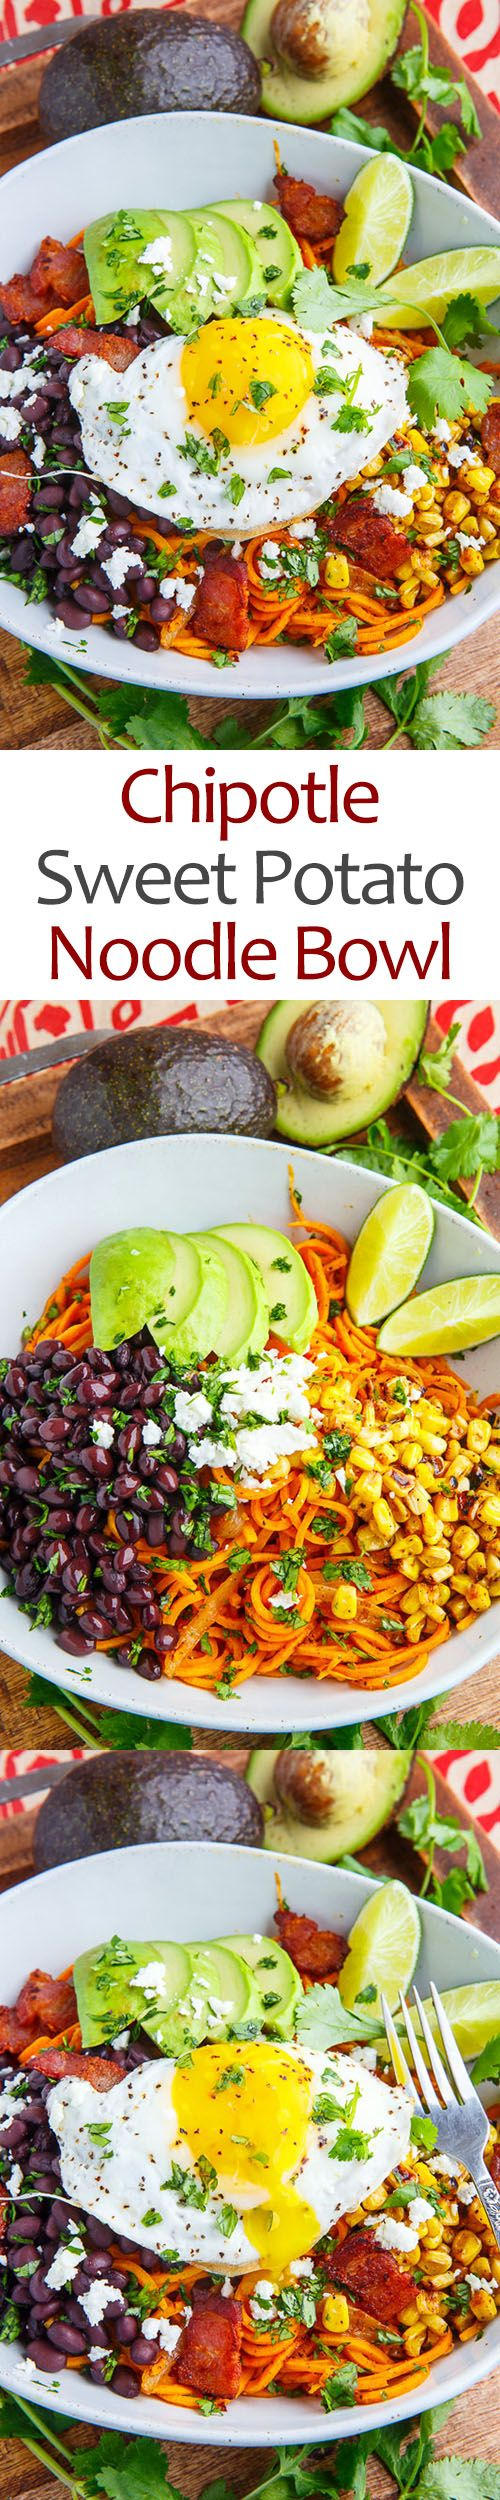 Chipotle Sweet Potato Noodle Bowl.  We made this with chimichurri sauce.  It was great!